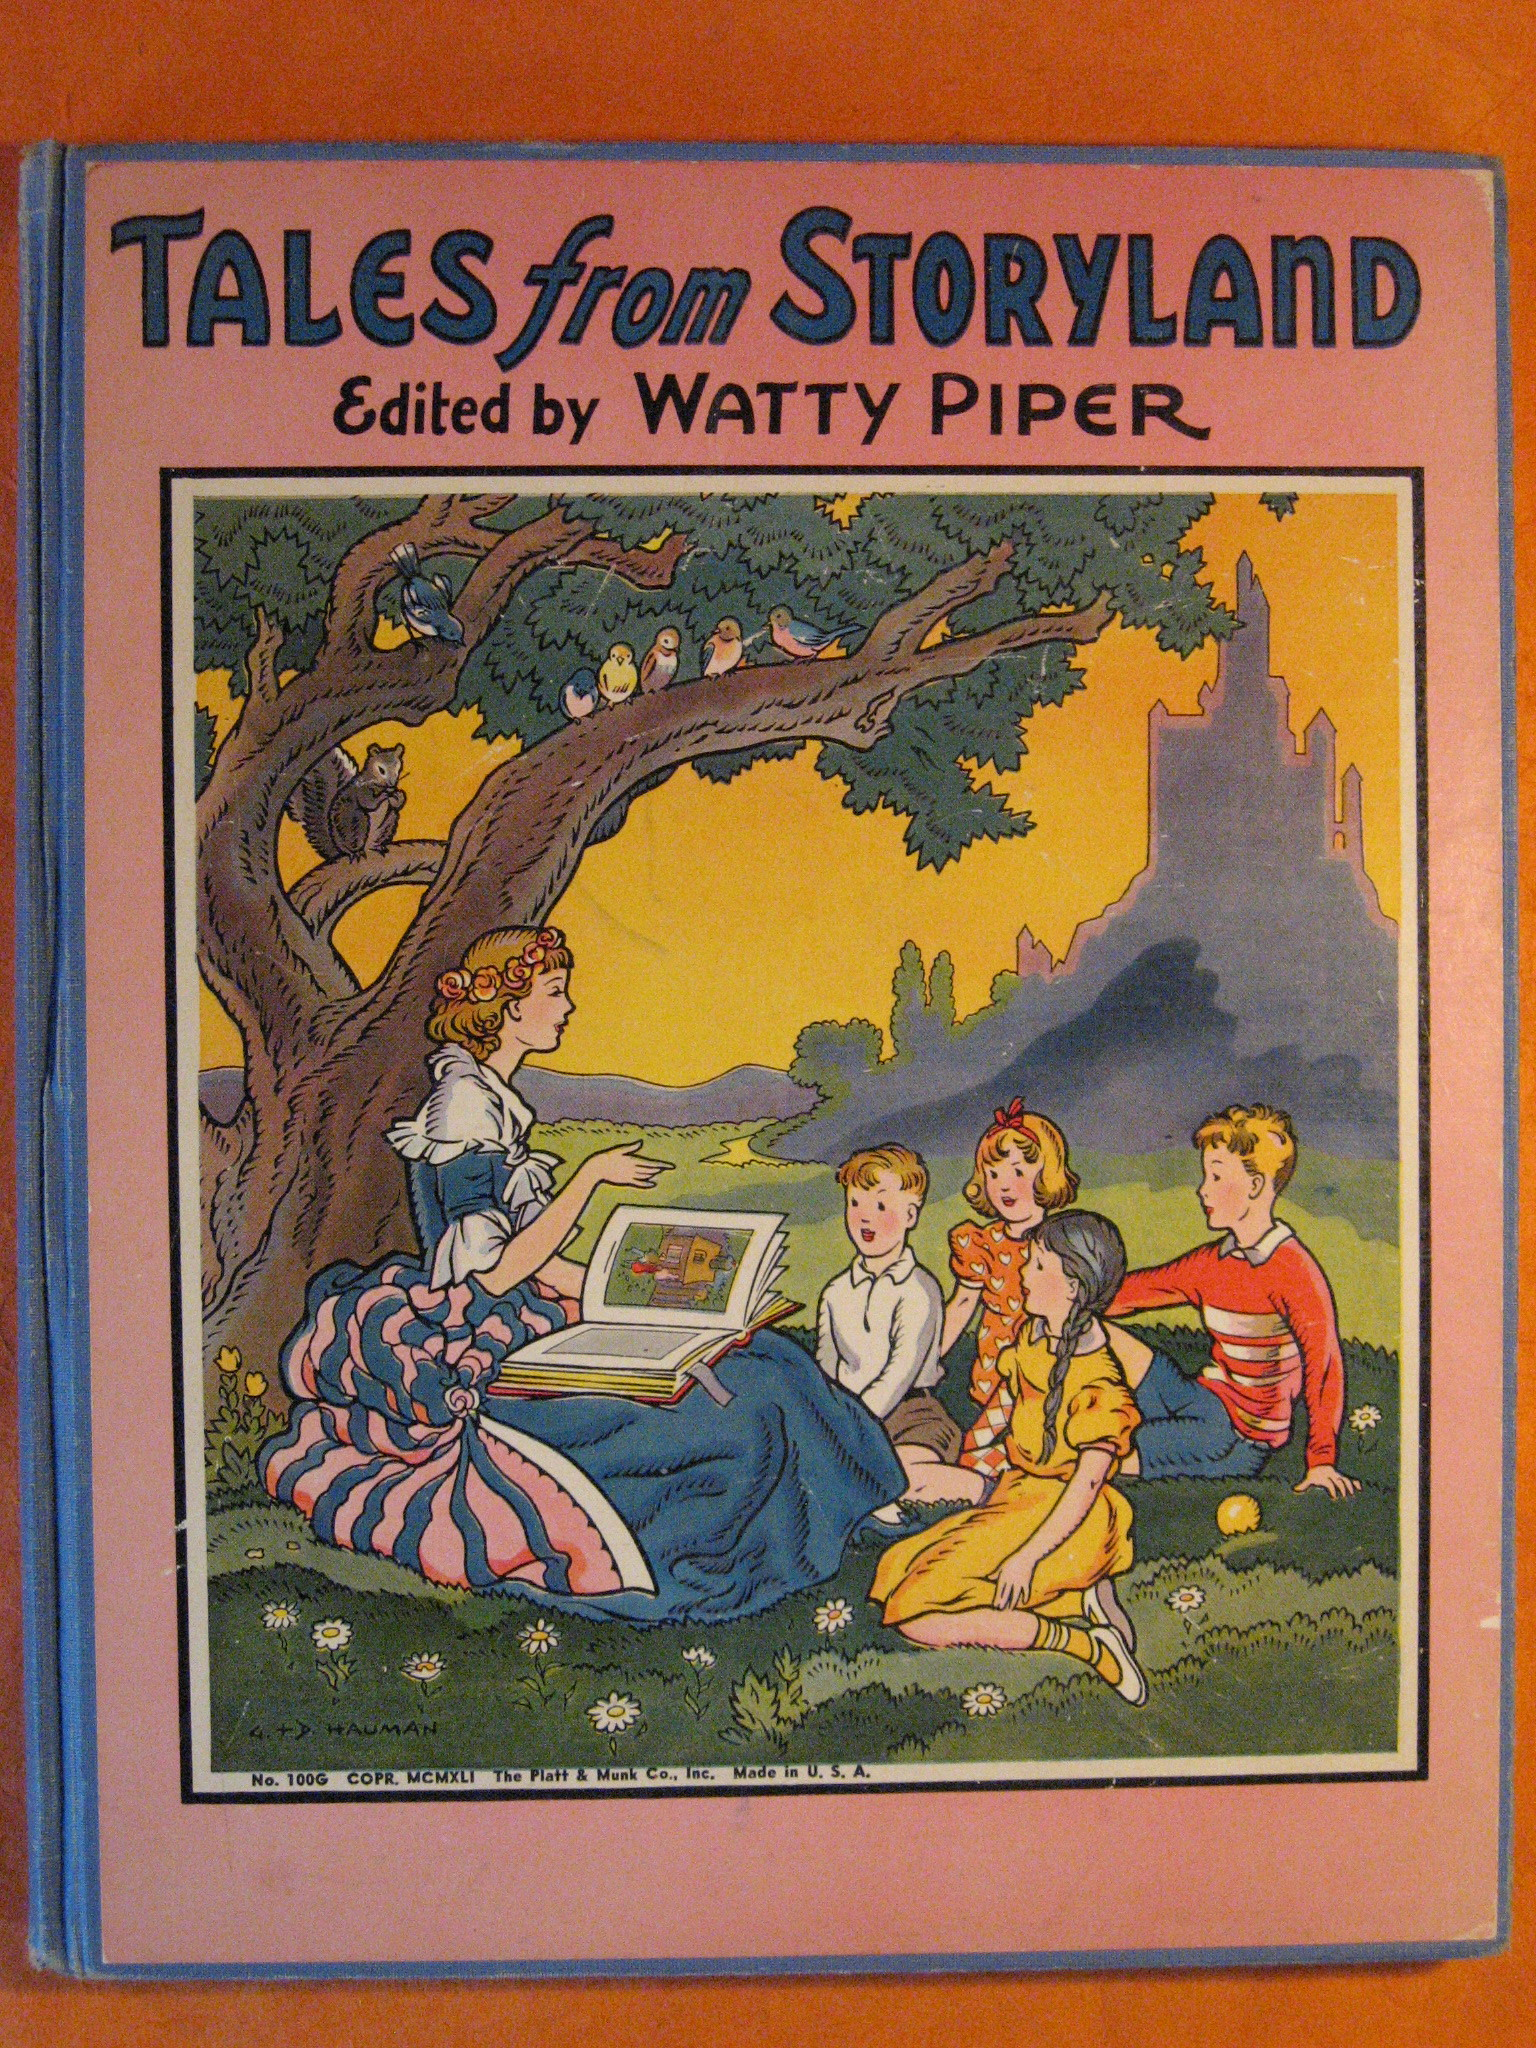 Tales from Storyland, Piper, Watty (Editor)